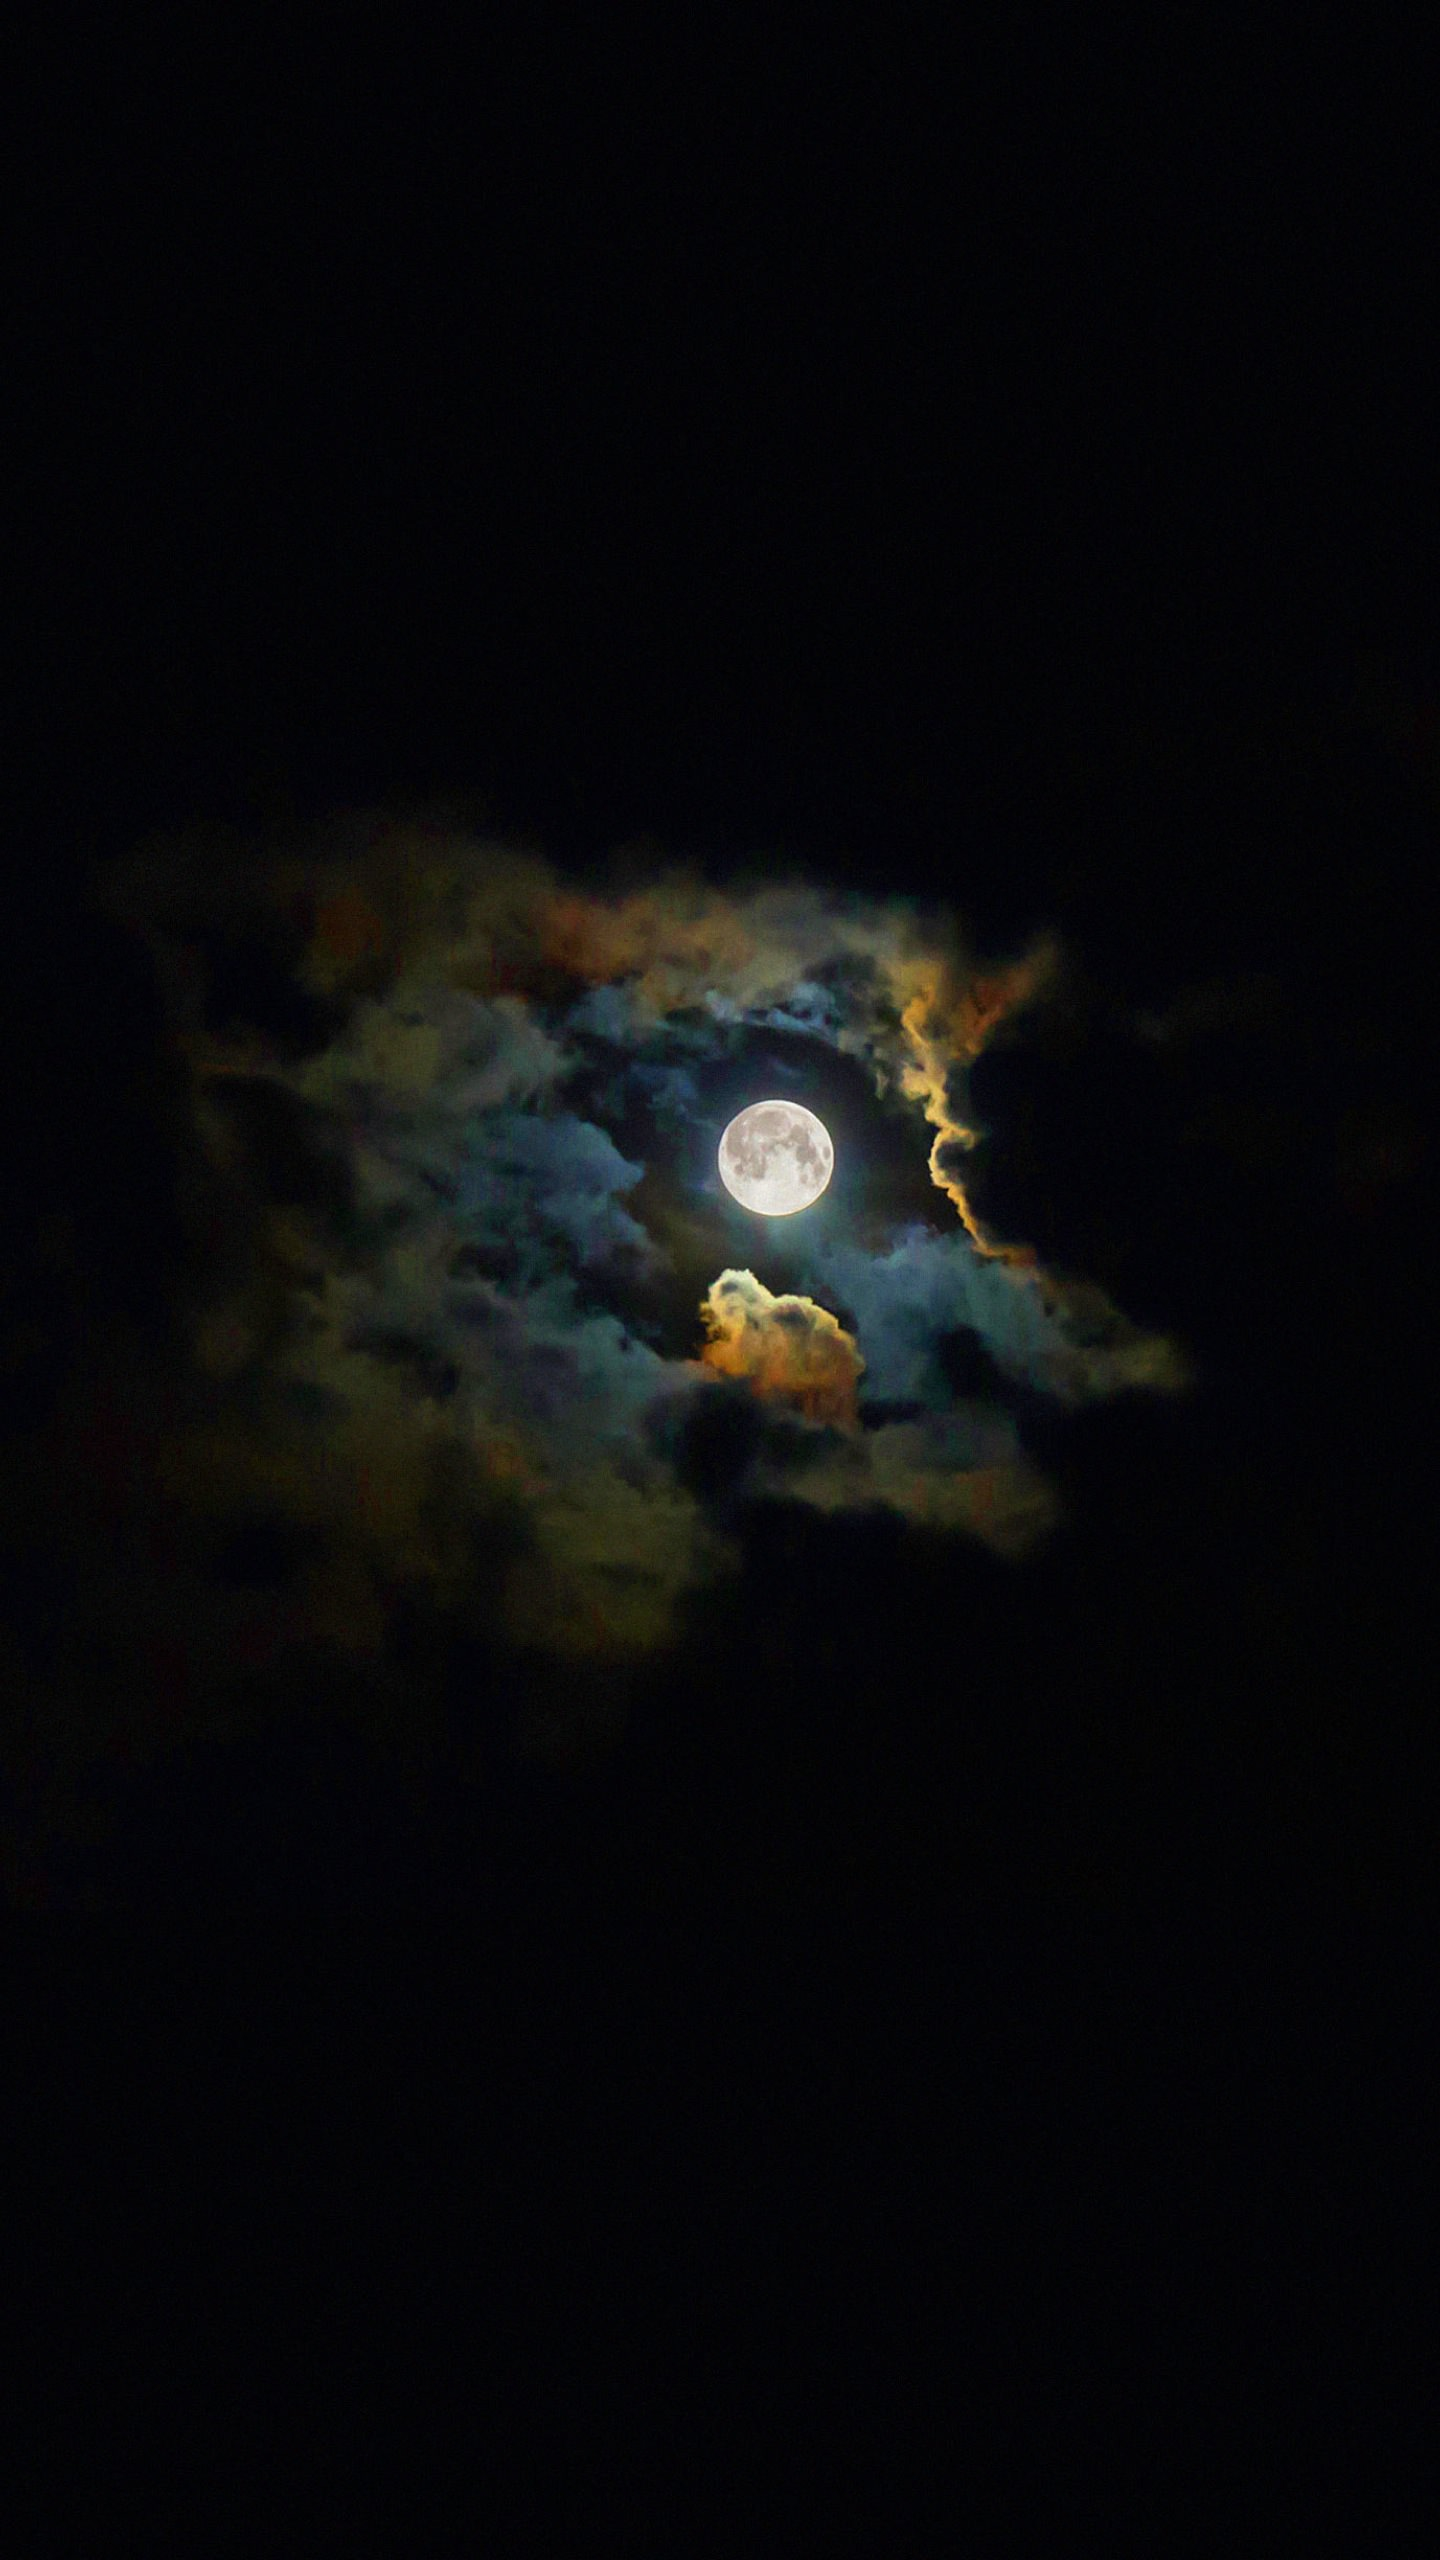 Red White And Blue Car Wallpaper Iphone Landscape Moon Shiny Black Wallpaper Sc Smartphone